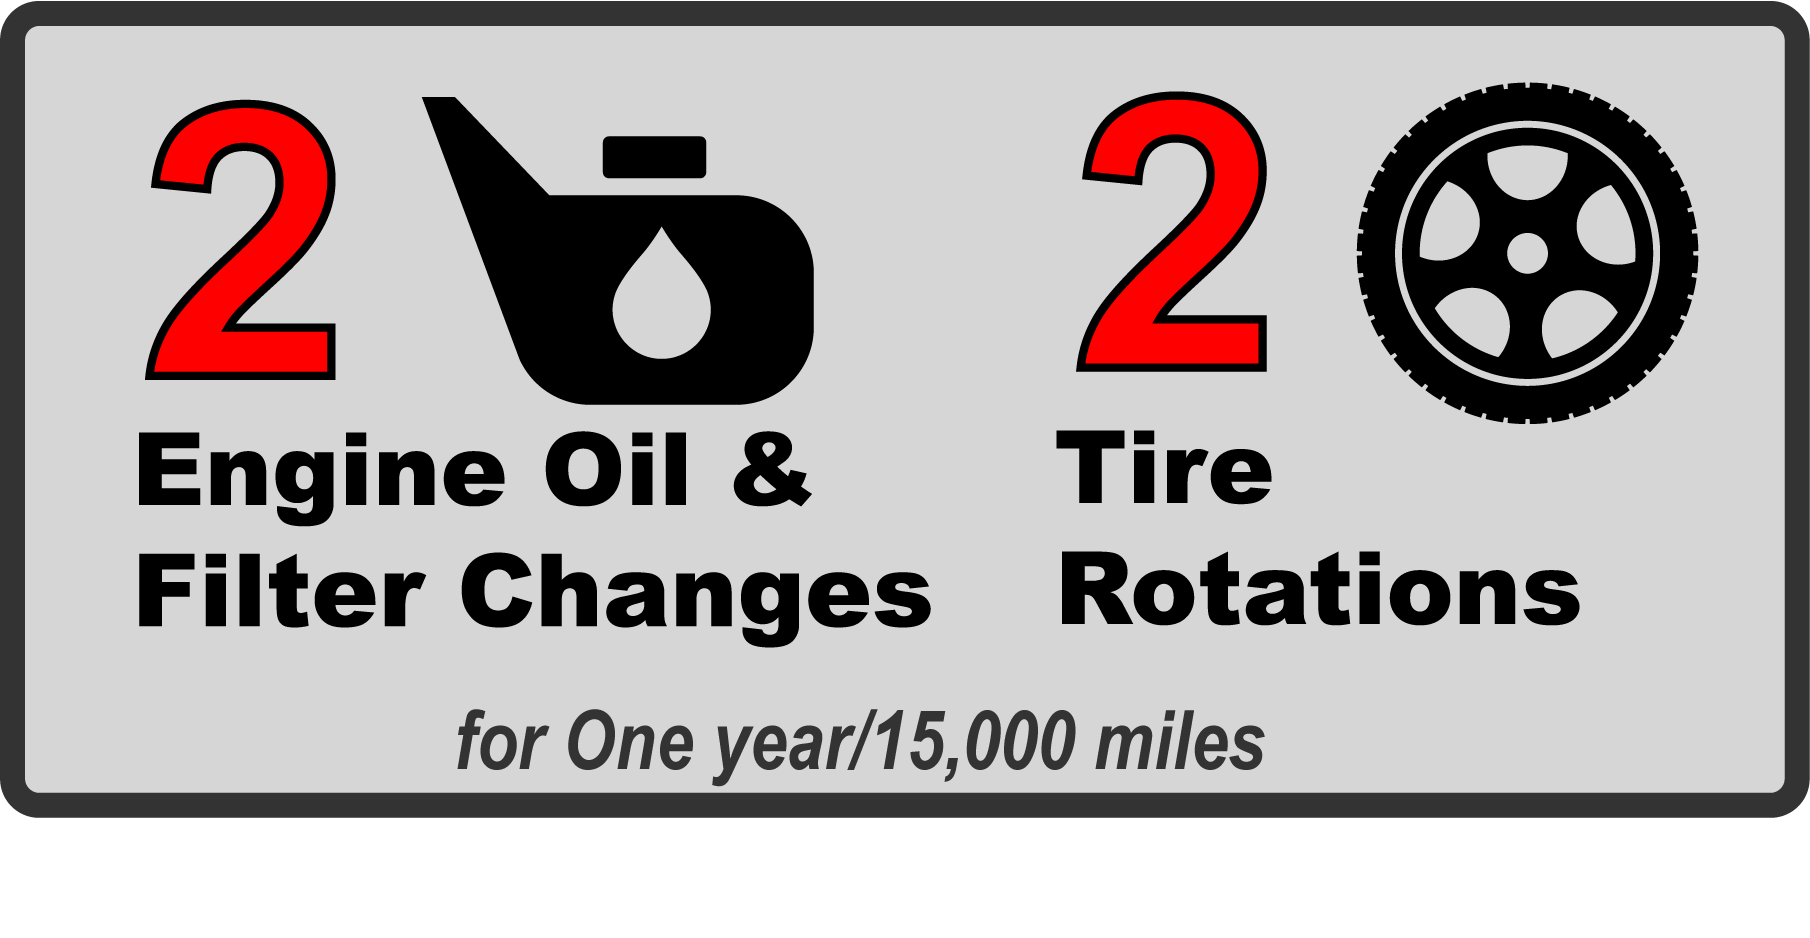 2 oil changes 2 tire rotations